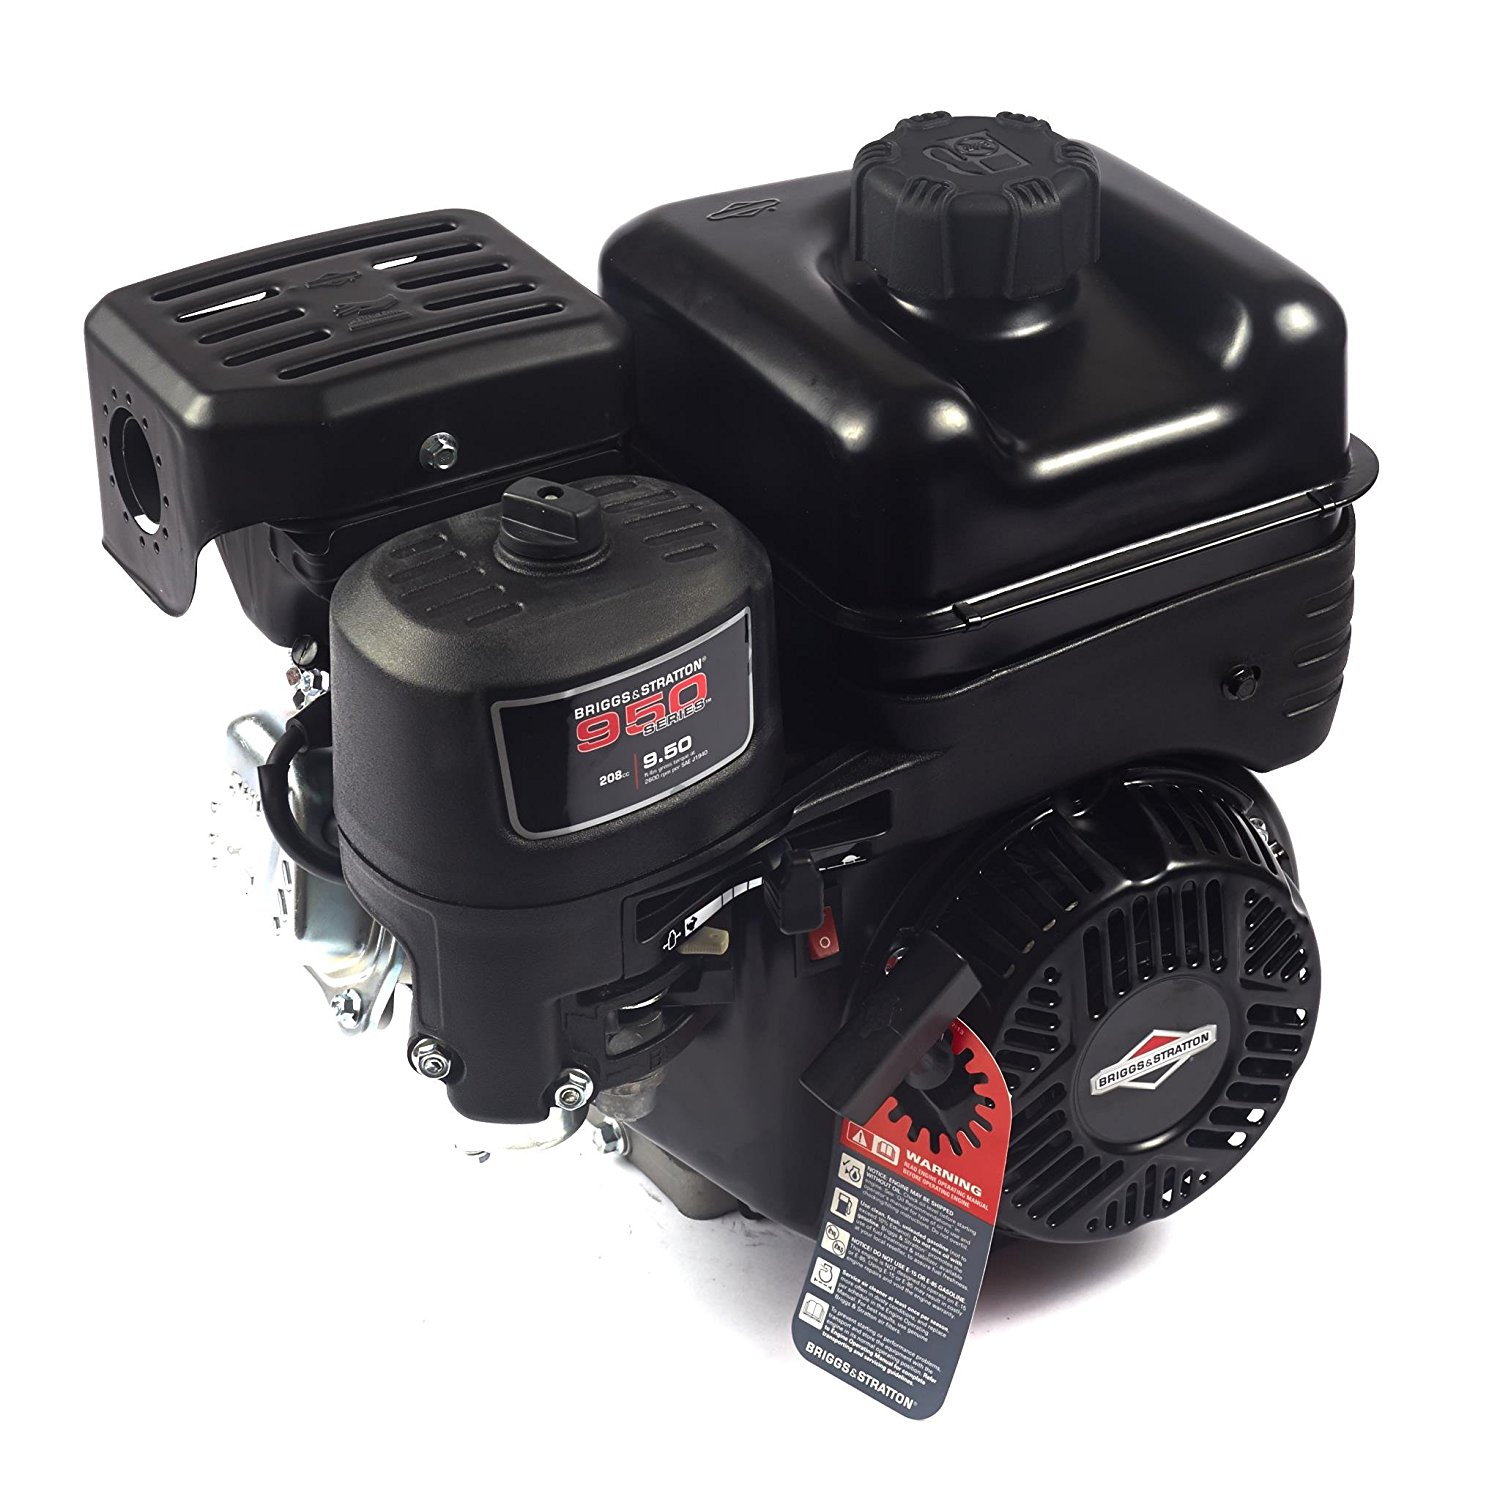 Briggs & Stratton 950 Series OHV Engine